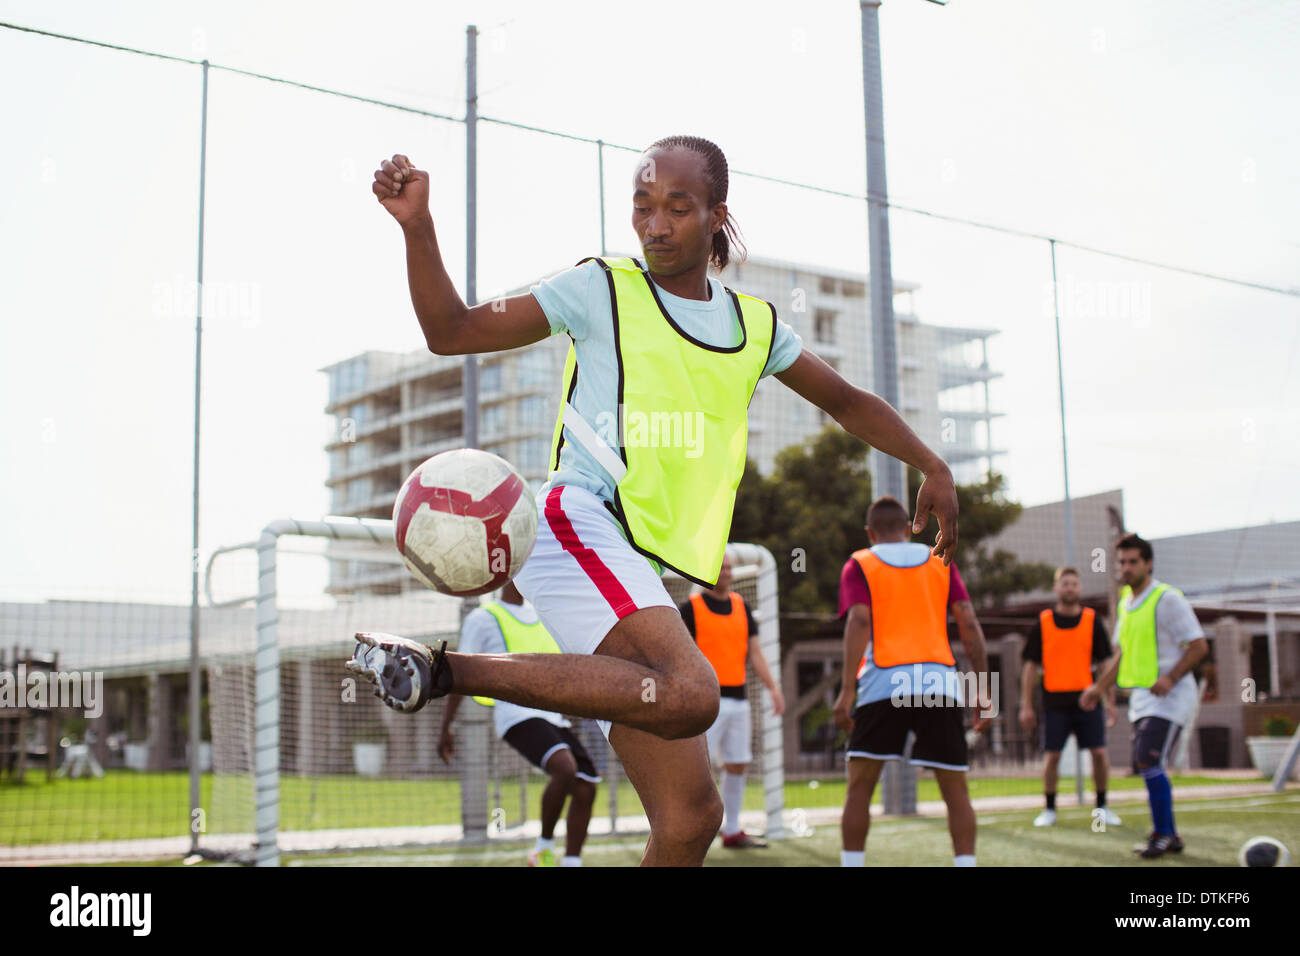 Soccer player training on field - Stock Image